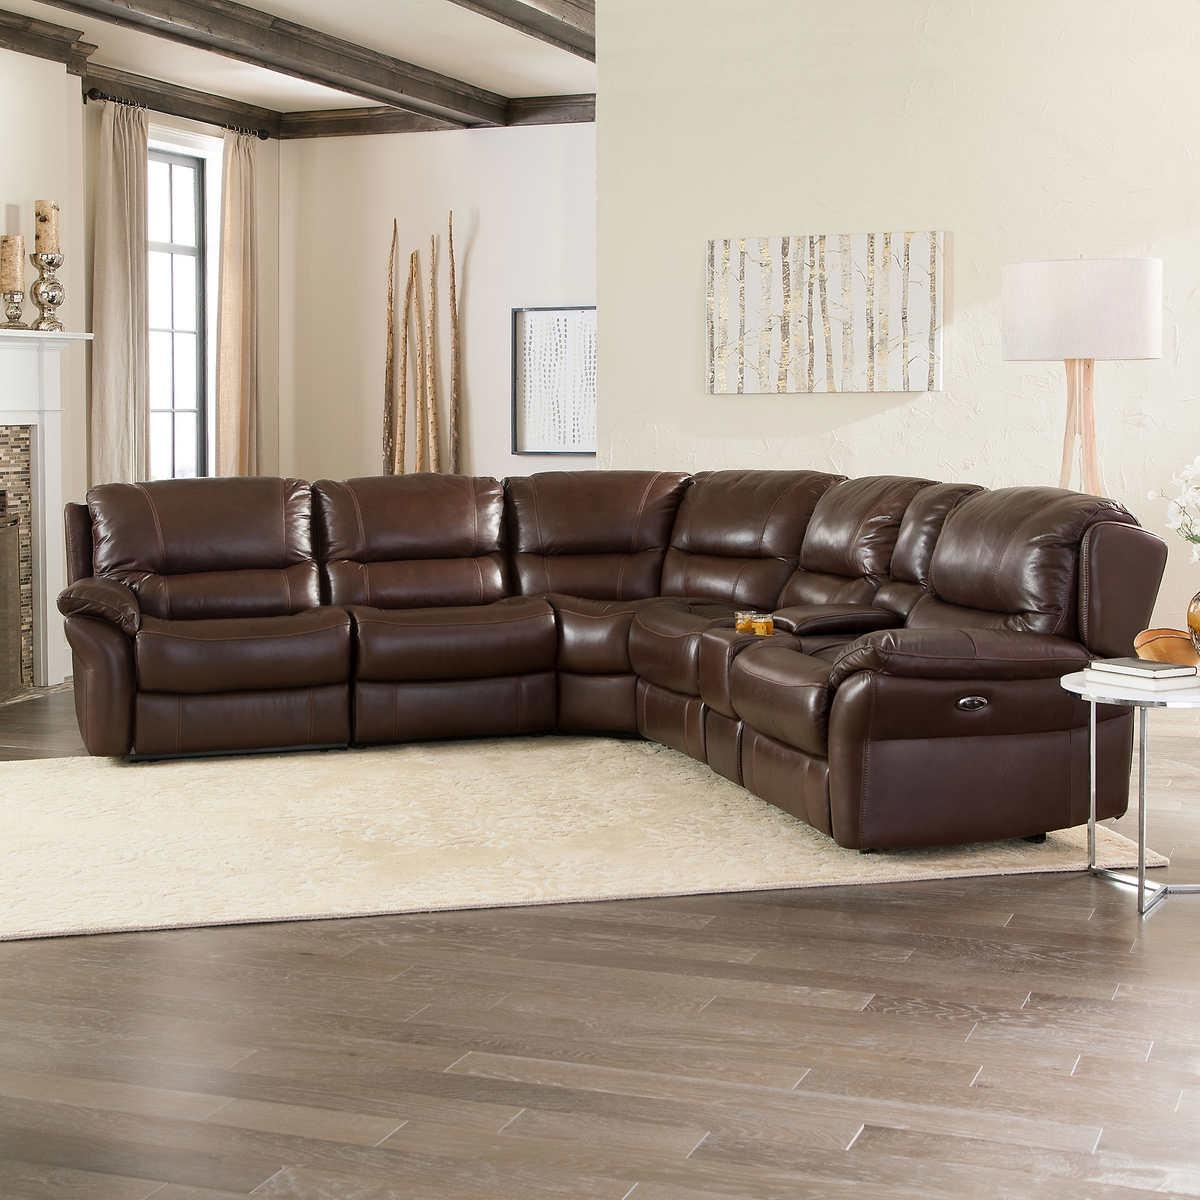 Leather Sectional Sofas With Recliners | Demand Sofas Set Pertaining To 6 Piece Leather Sectional Sofa (Image 6 of 15)